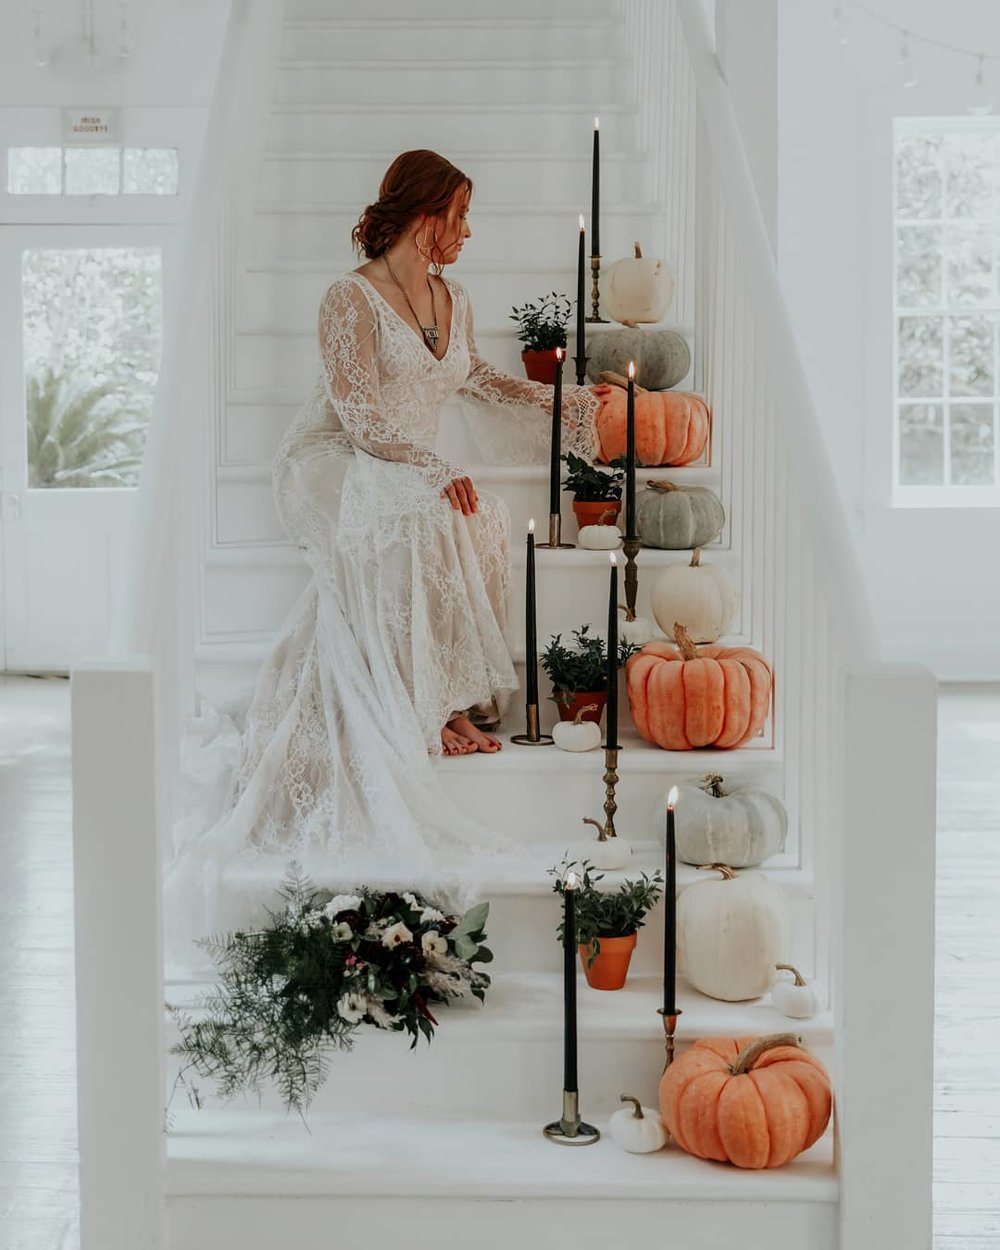 Halloween Wedding Accents with Pumpkins